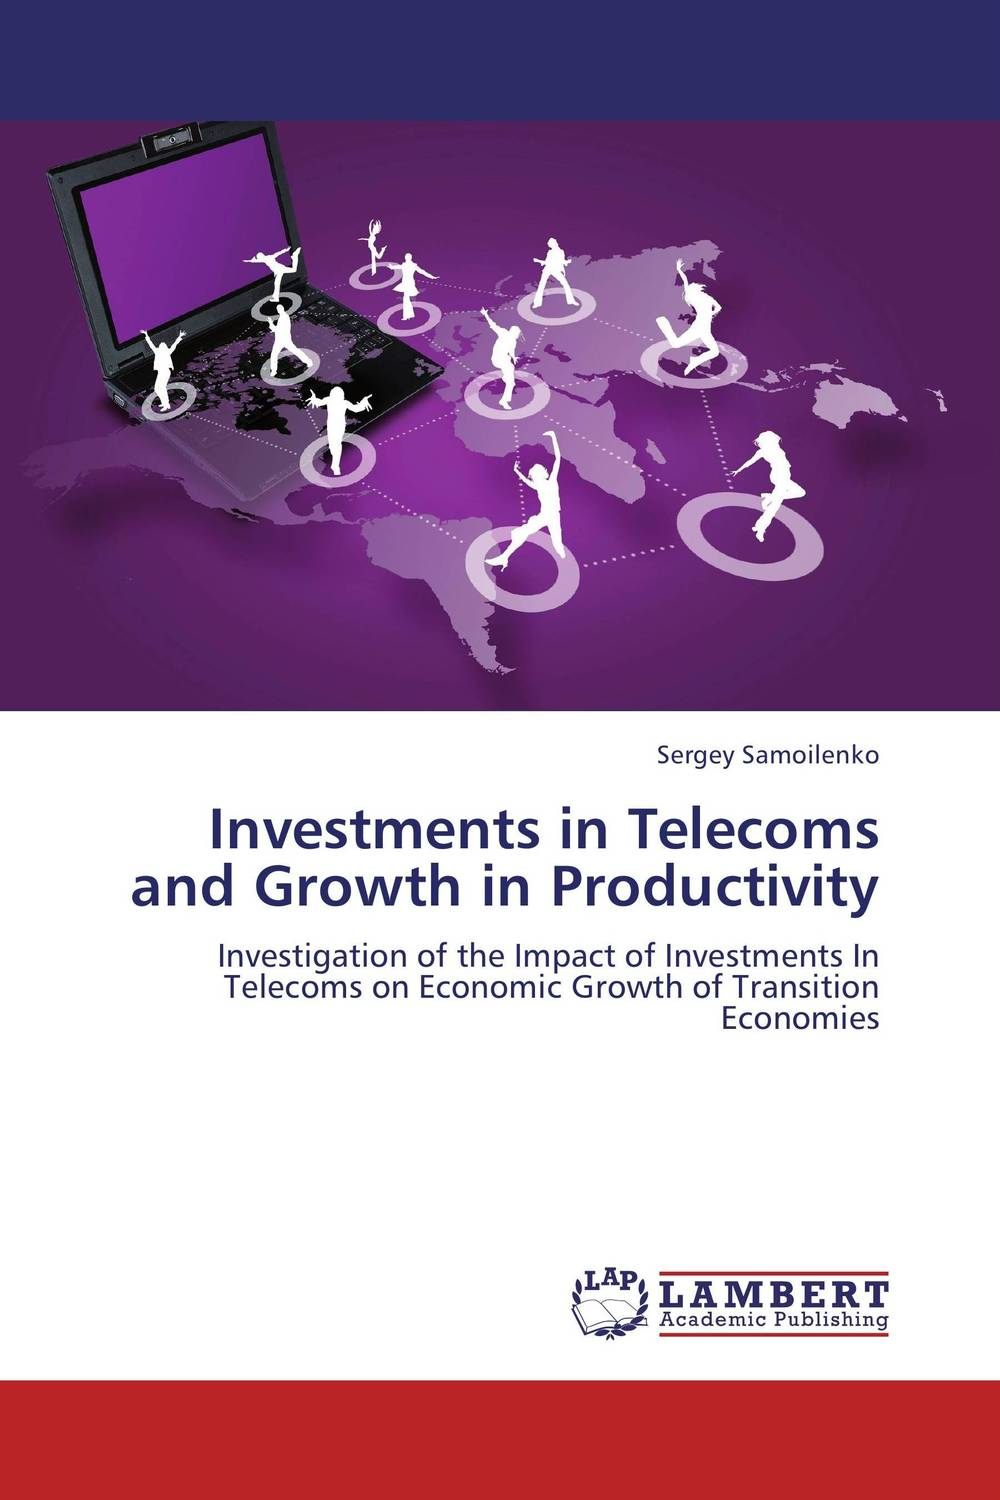 Investments in Telecoms and Growth in Productivity the common link